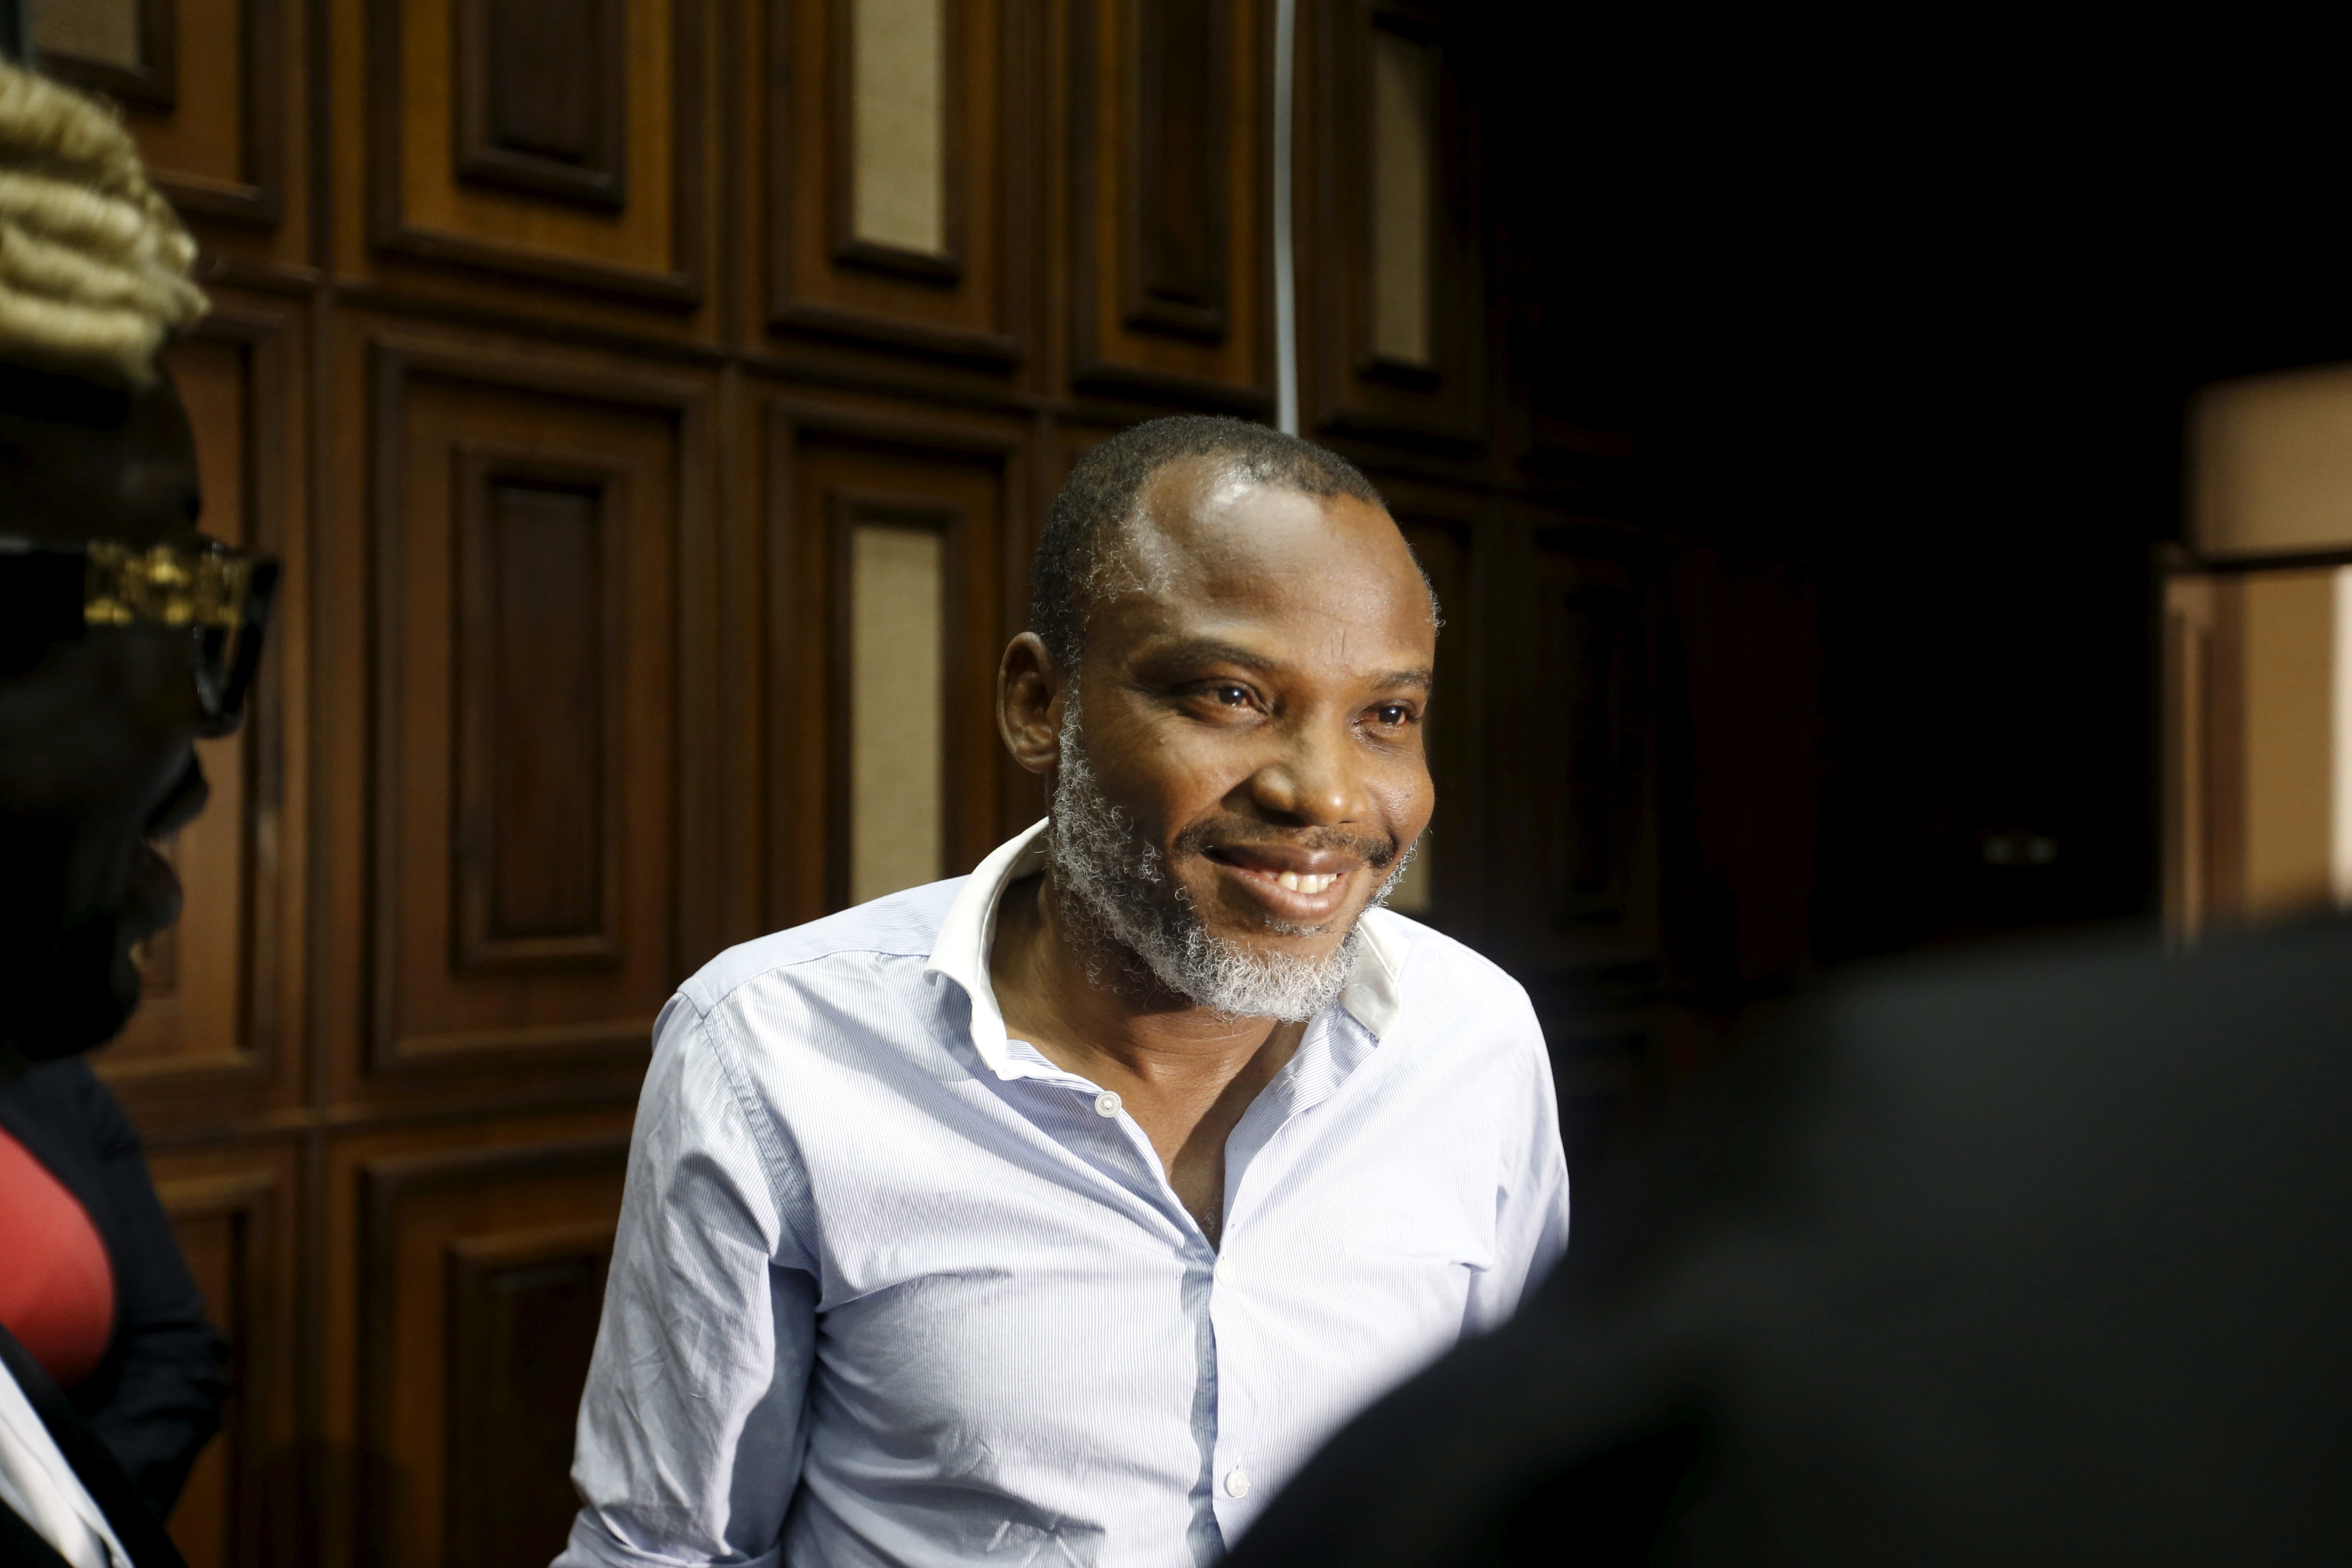 Indigenous People of Biafra (IPOB) leader Nnamdi Kanu is seen at the Federal high court Abuja, Nigeria January 20, 2016 REUTERS/Afolabi Sotunde/File Photo